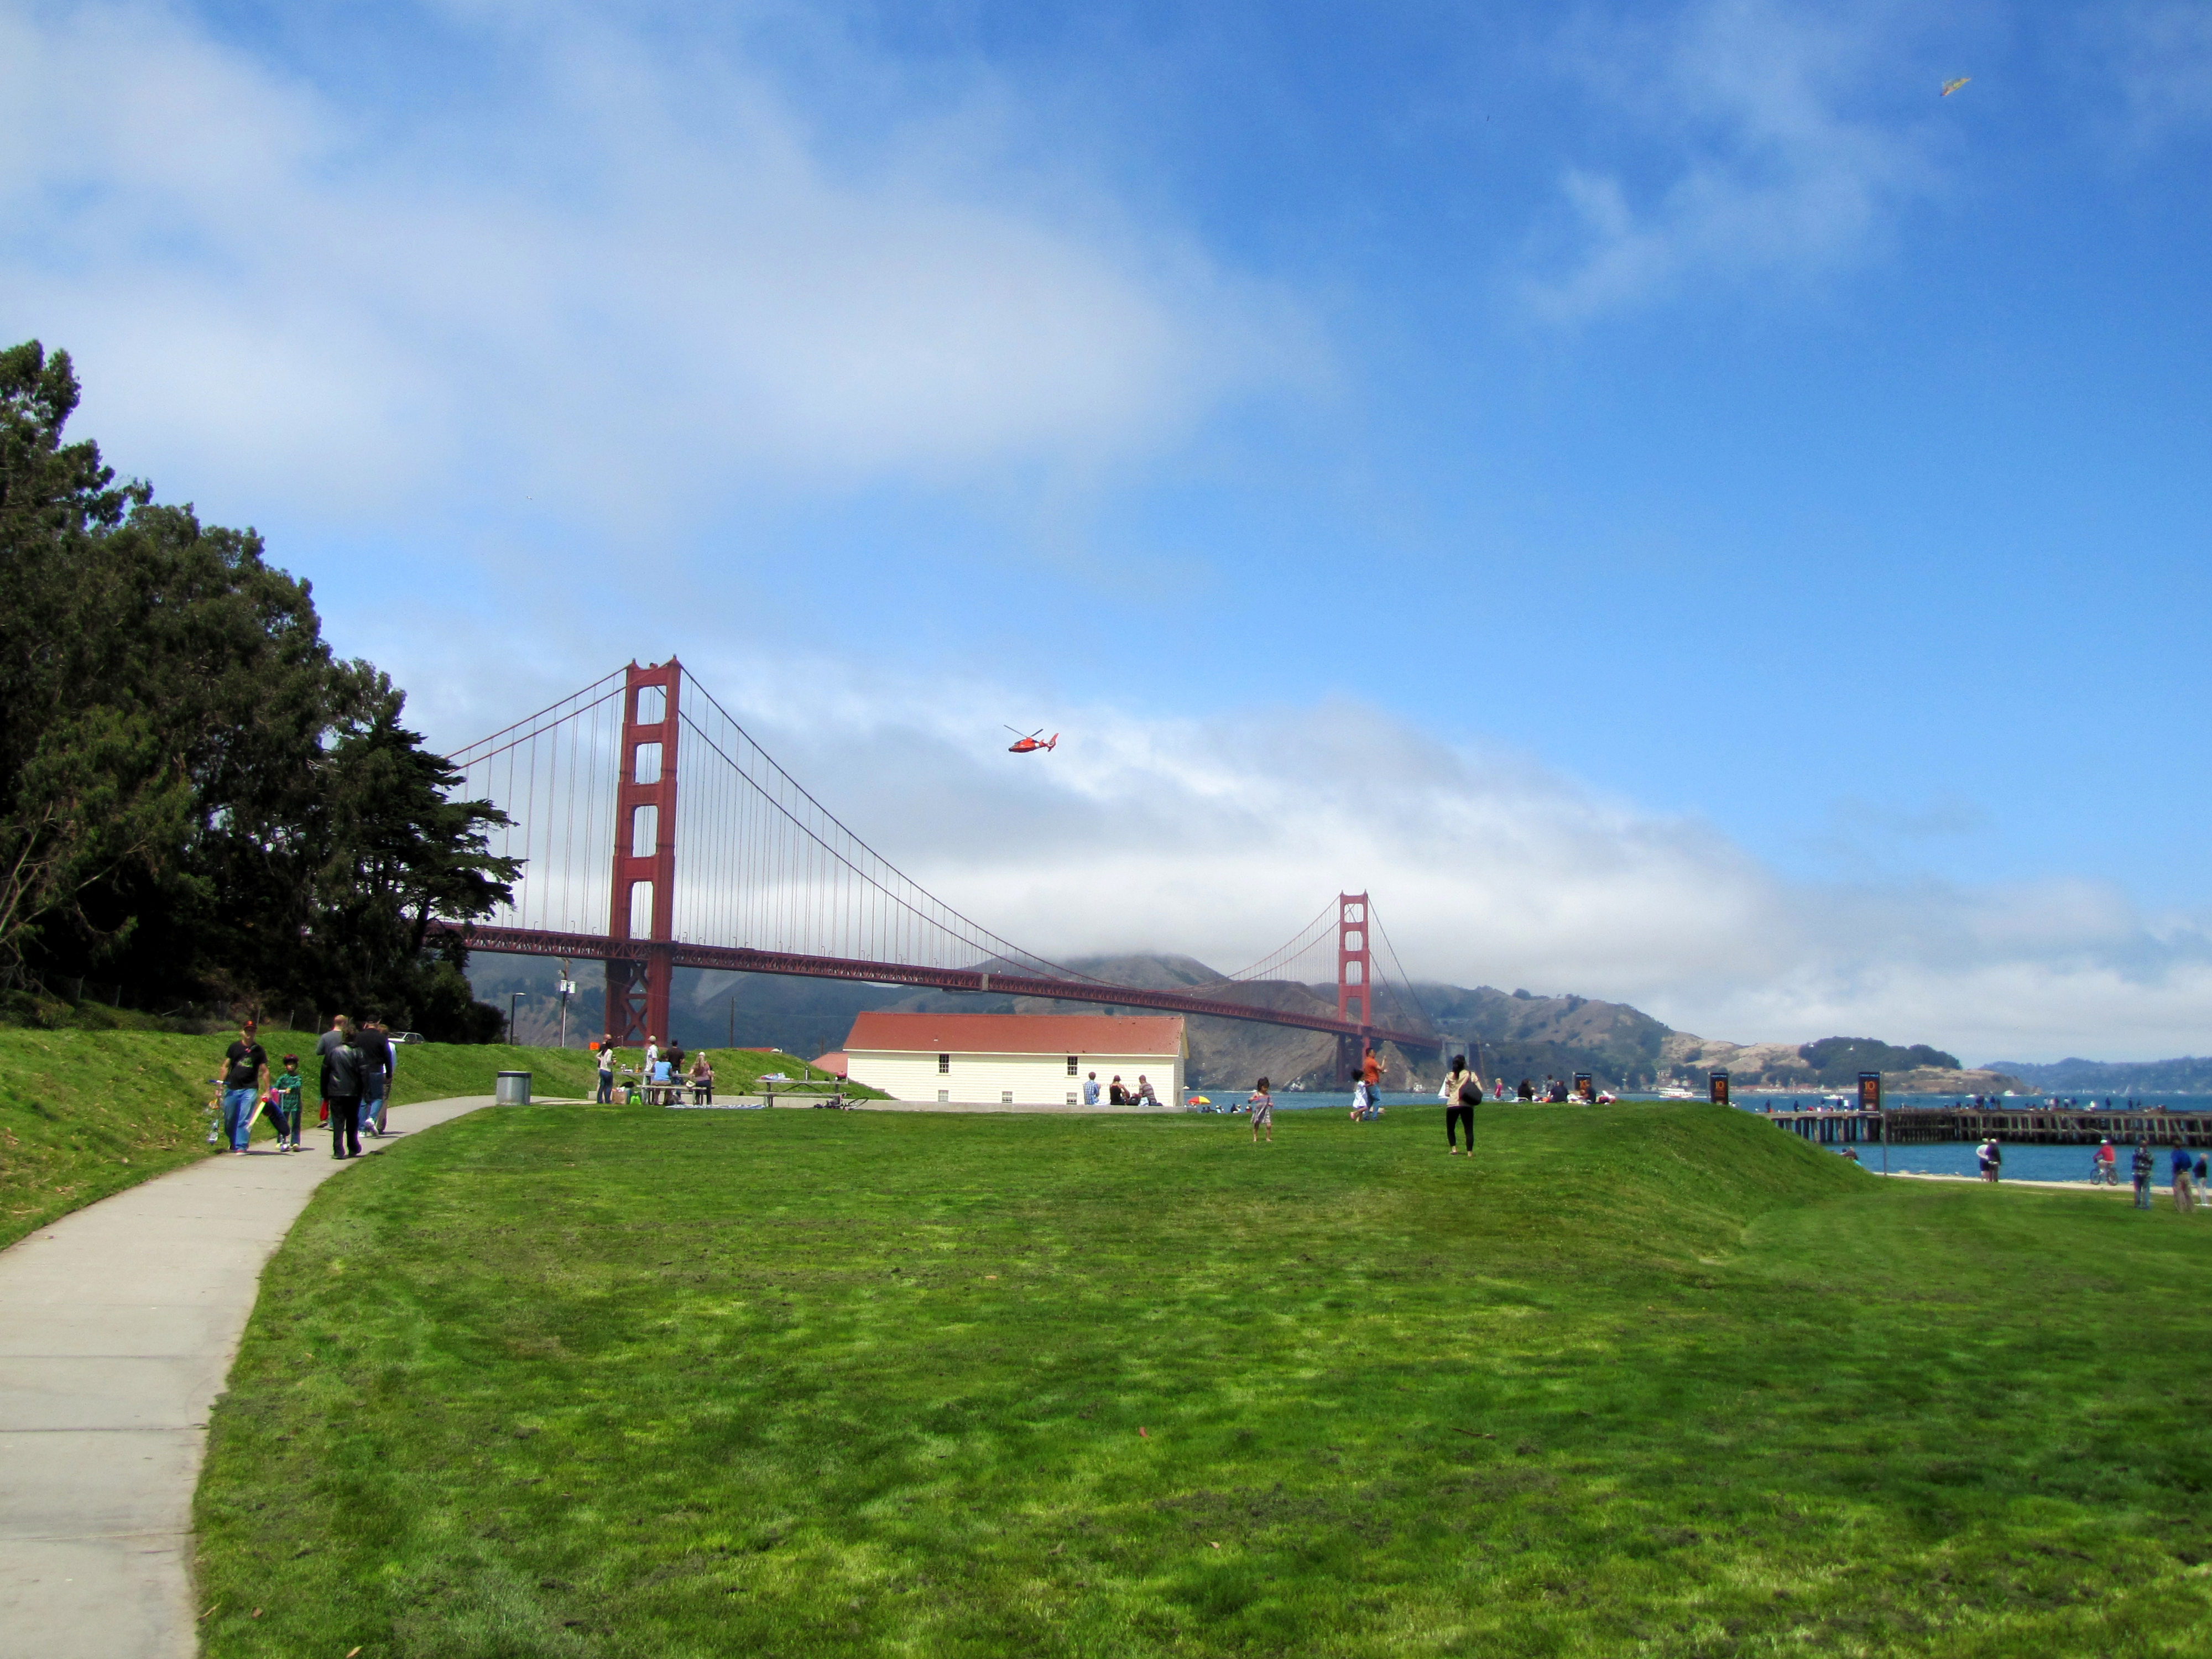 The Amazing Transformation Of Crissy Field